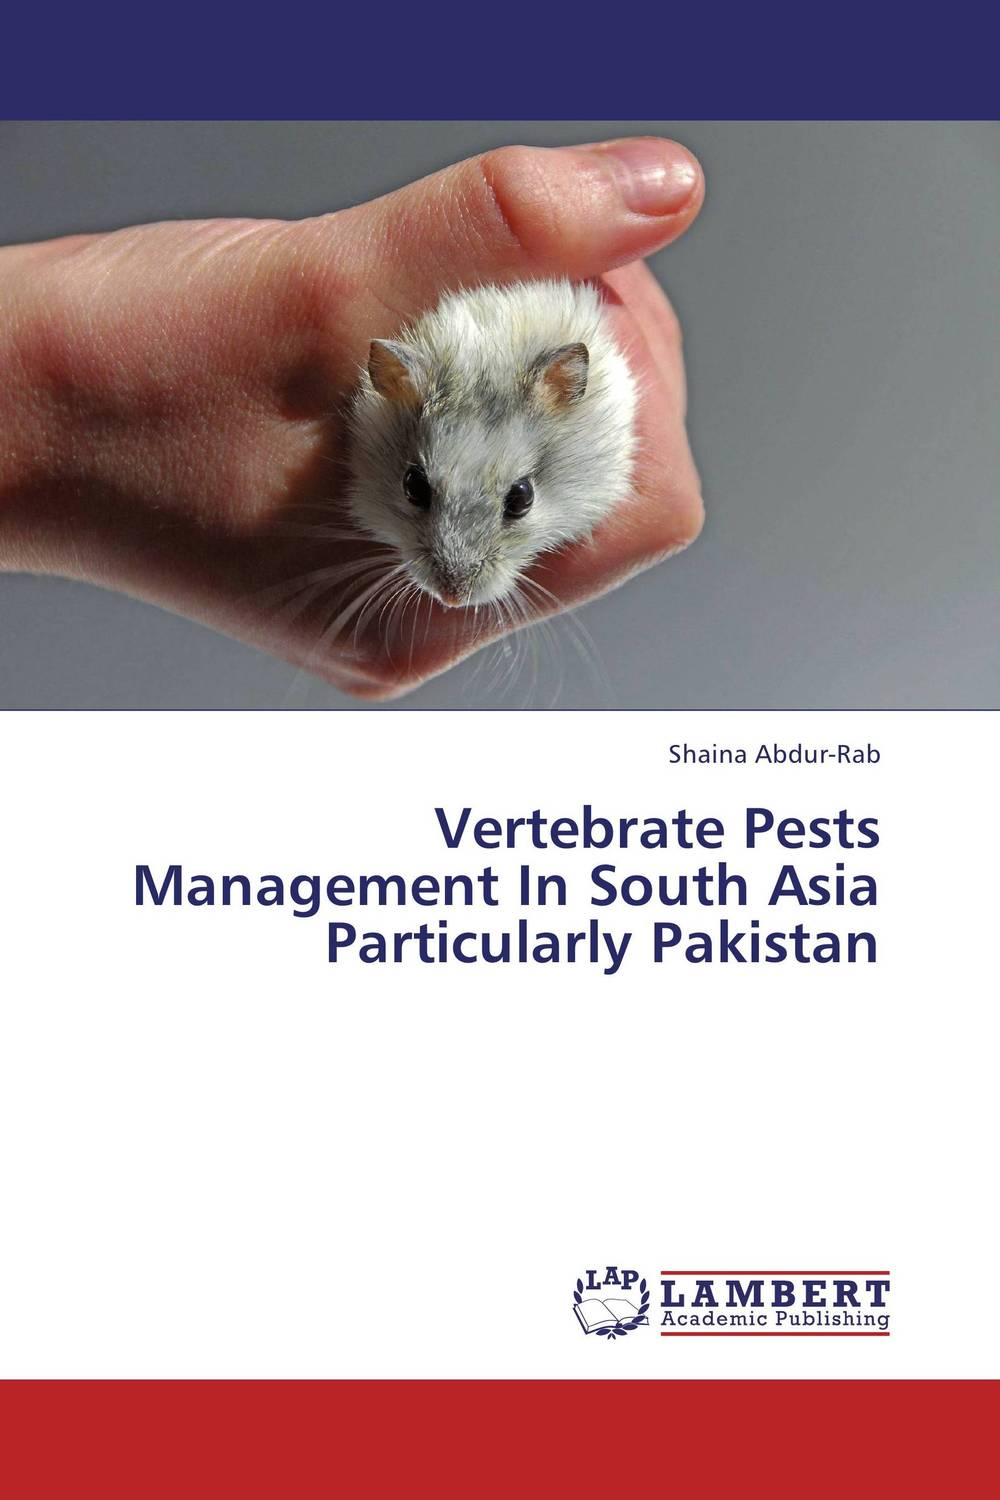 Vertebrate Pests Management In South Asia Particularly Pakistan new arrival fashion style couple wear shoes striped men women winter time slippers indoor wear unisex good quality comfortable